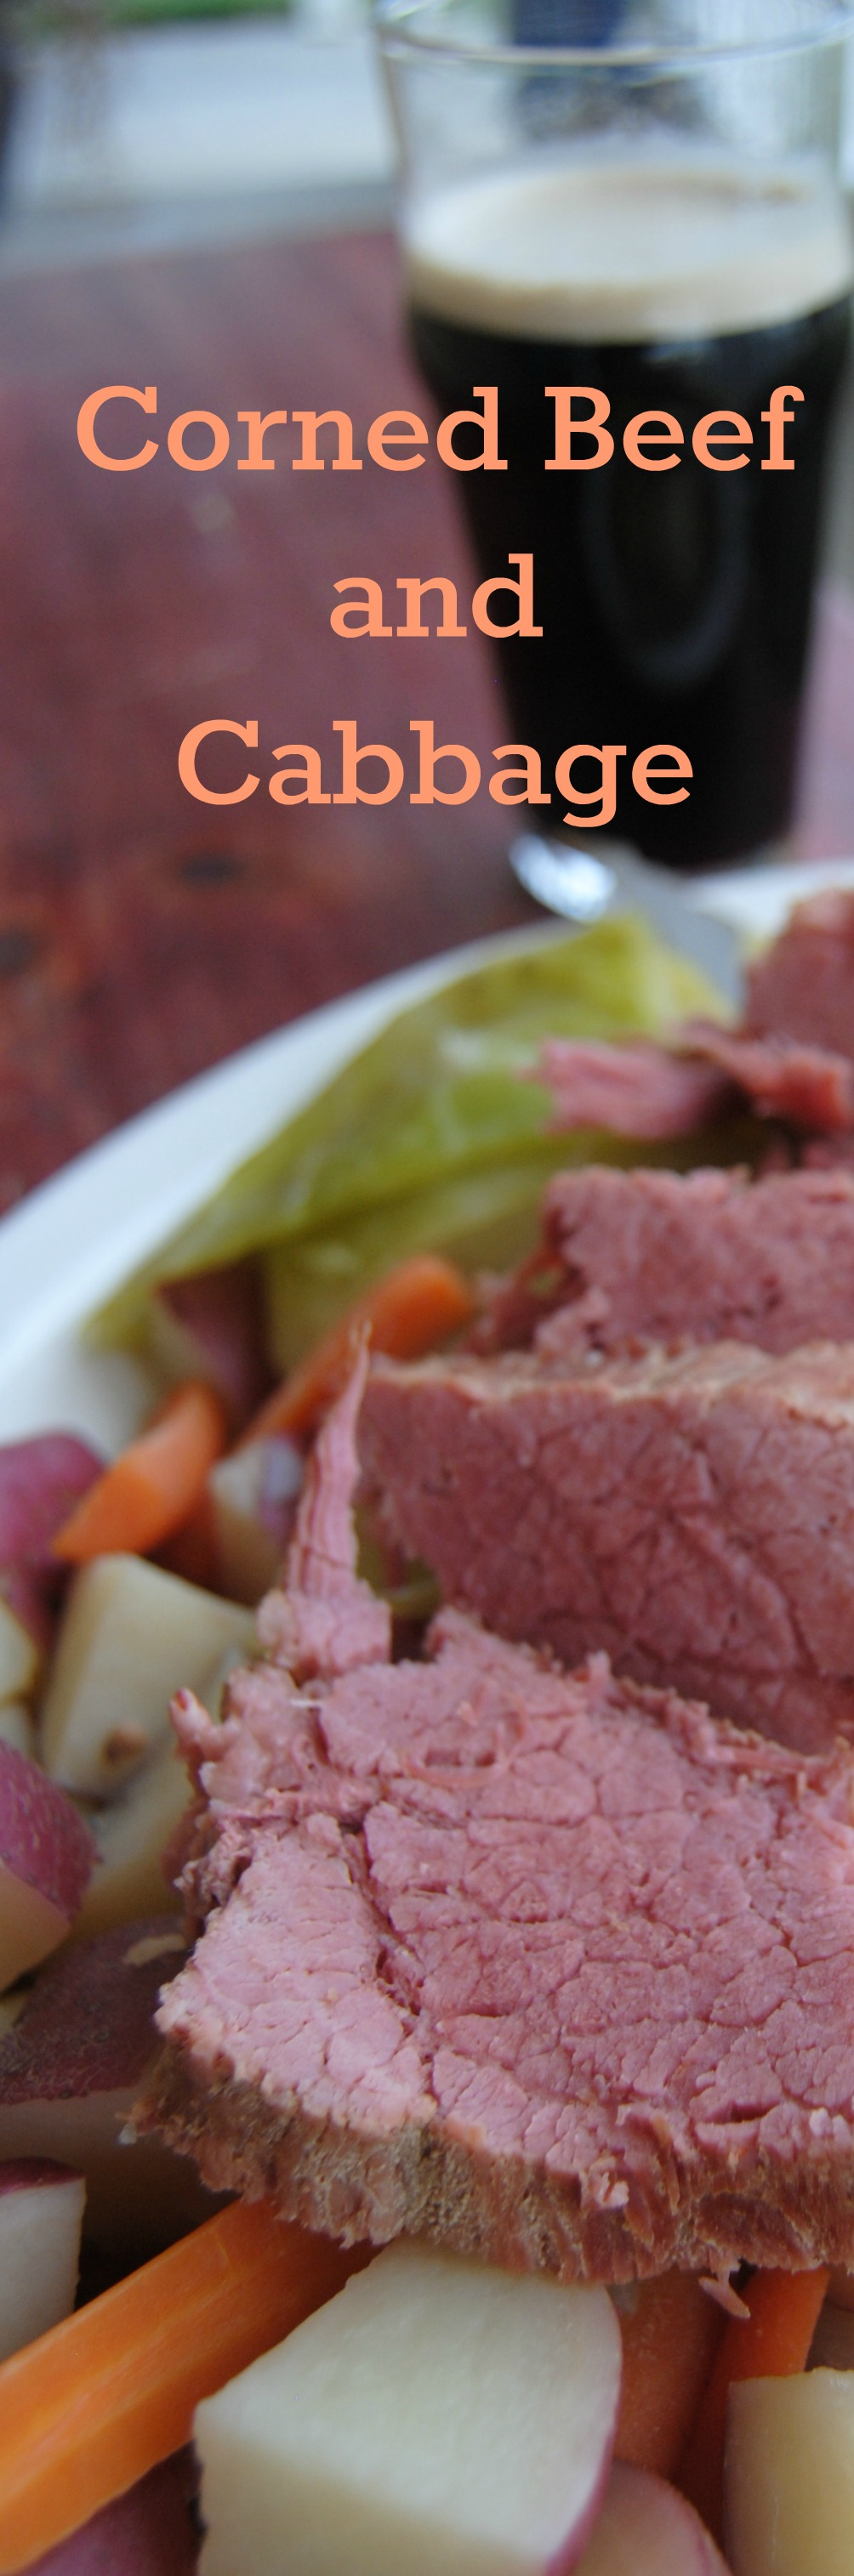 Corned Beef and Cabbage Pintrest